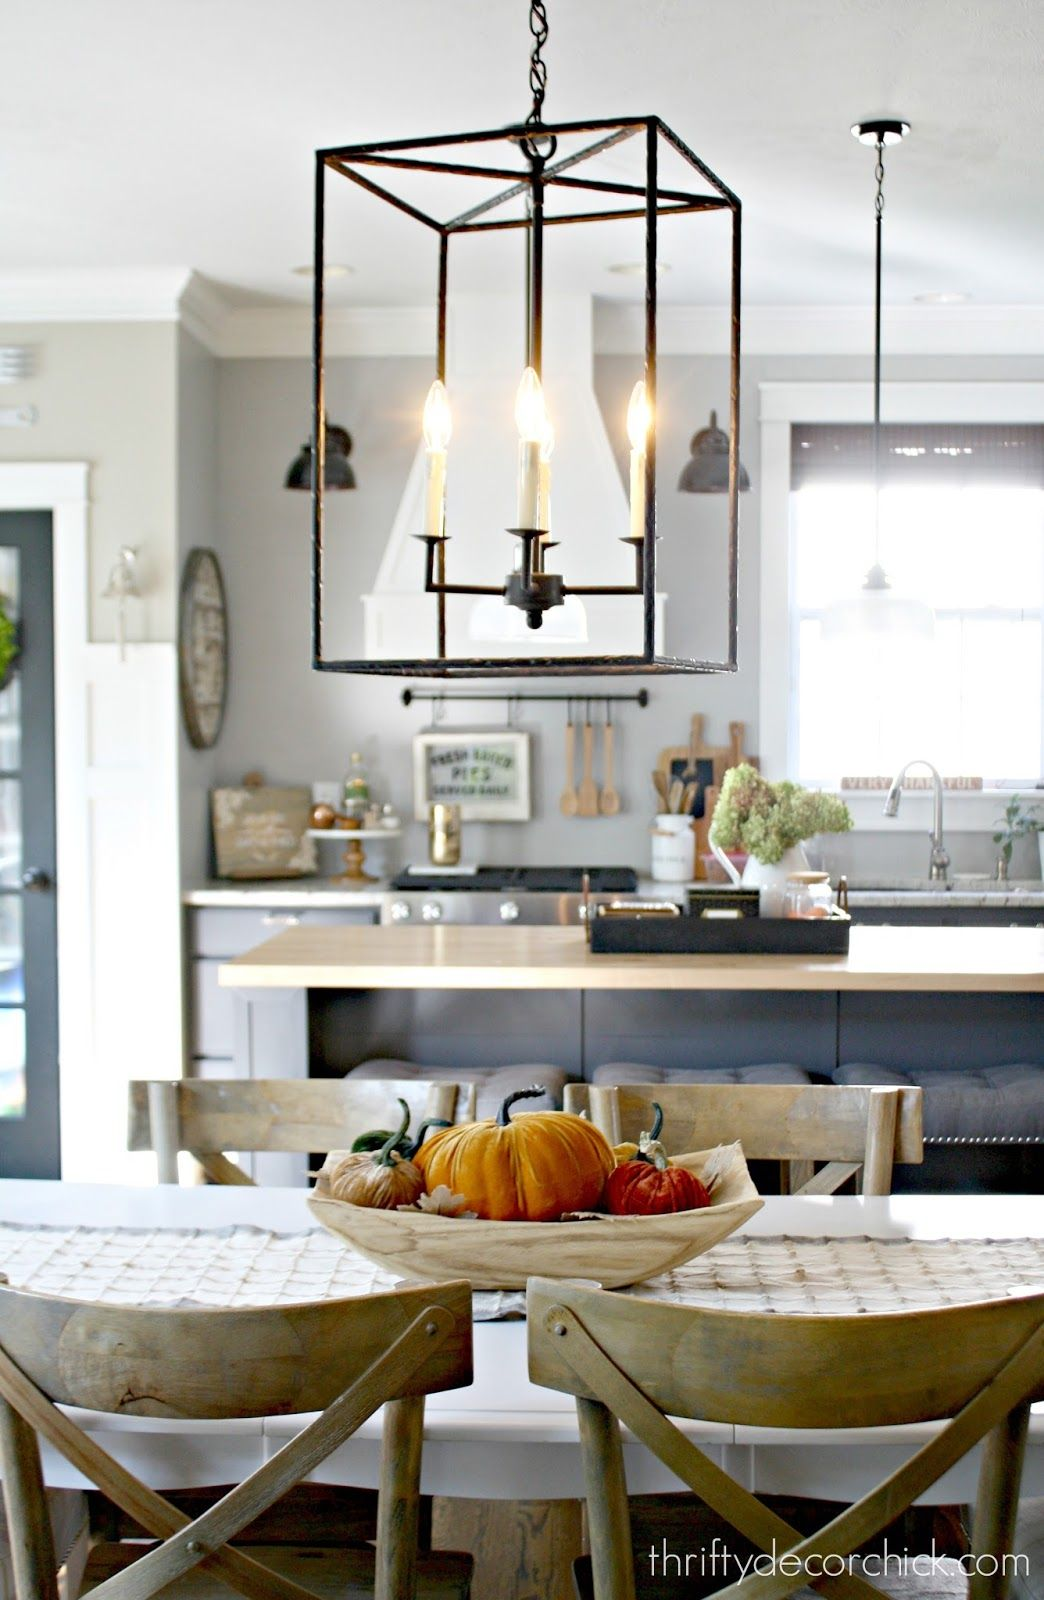 Cool light fixture over kitchen table